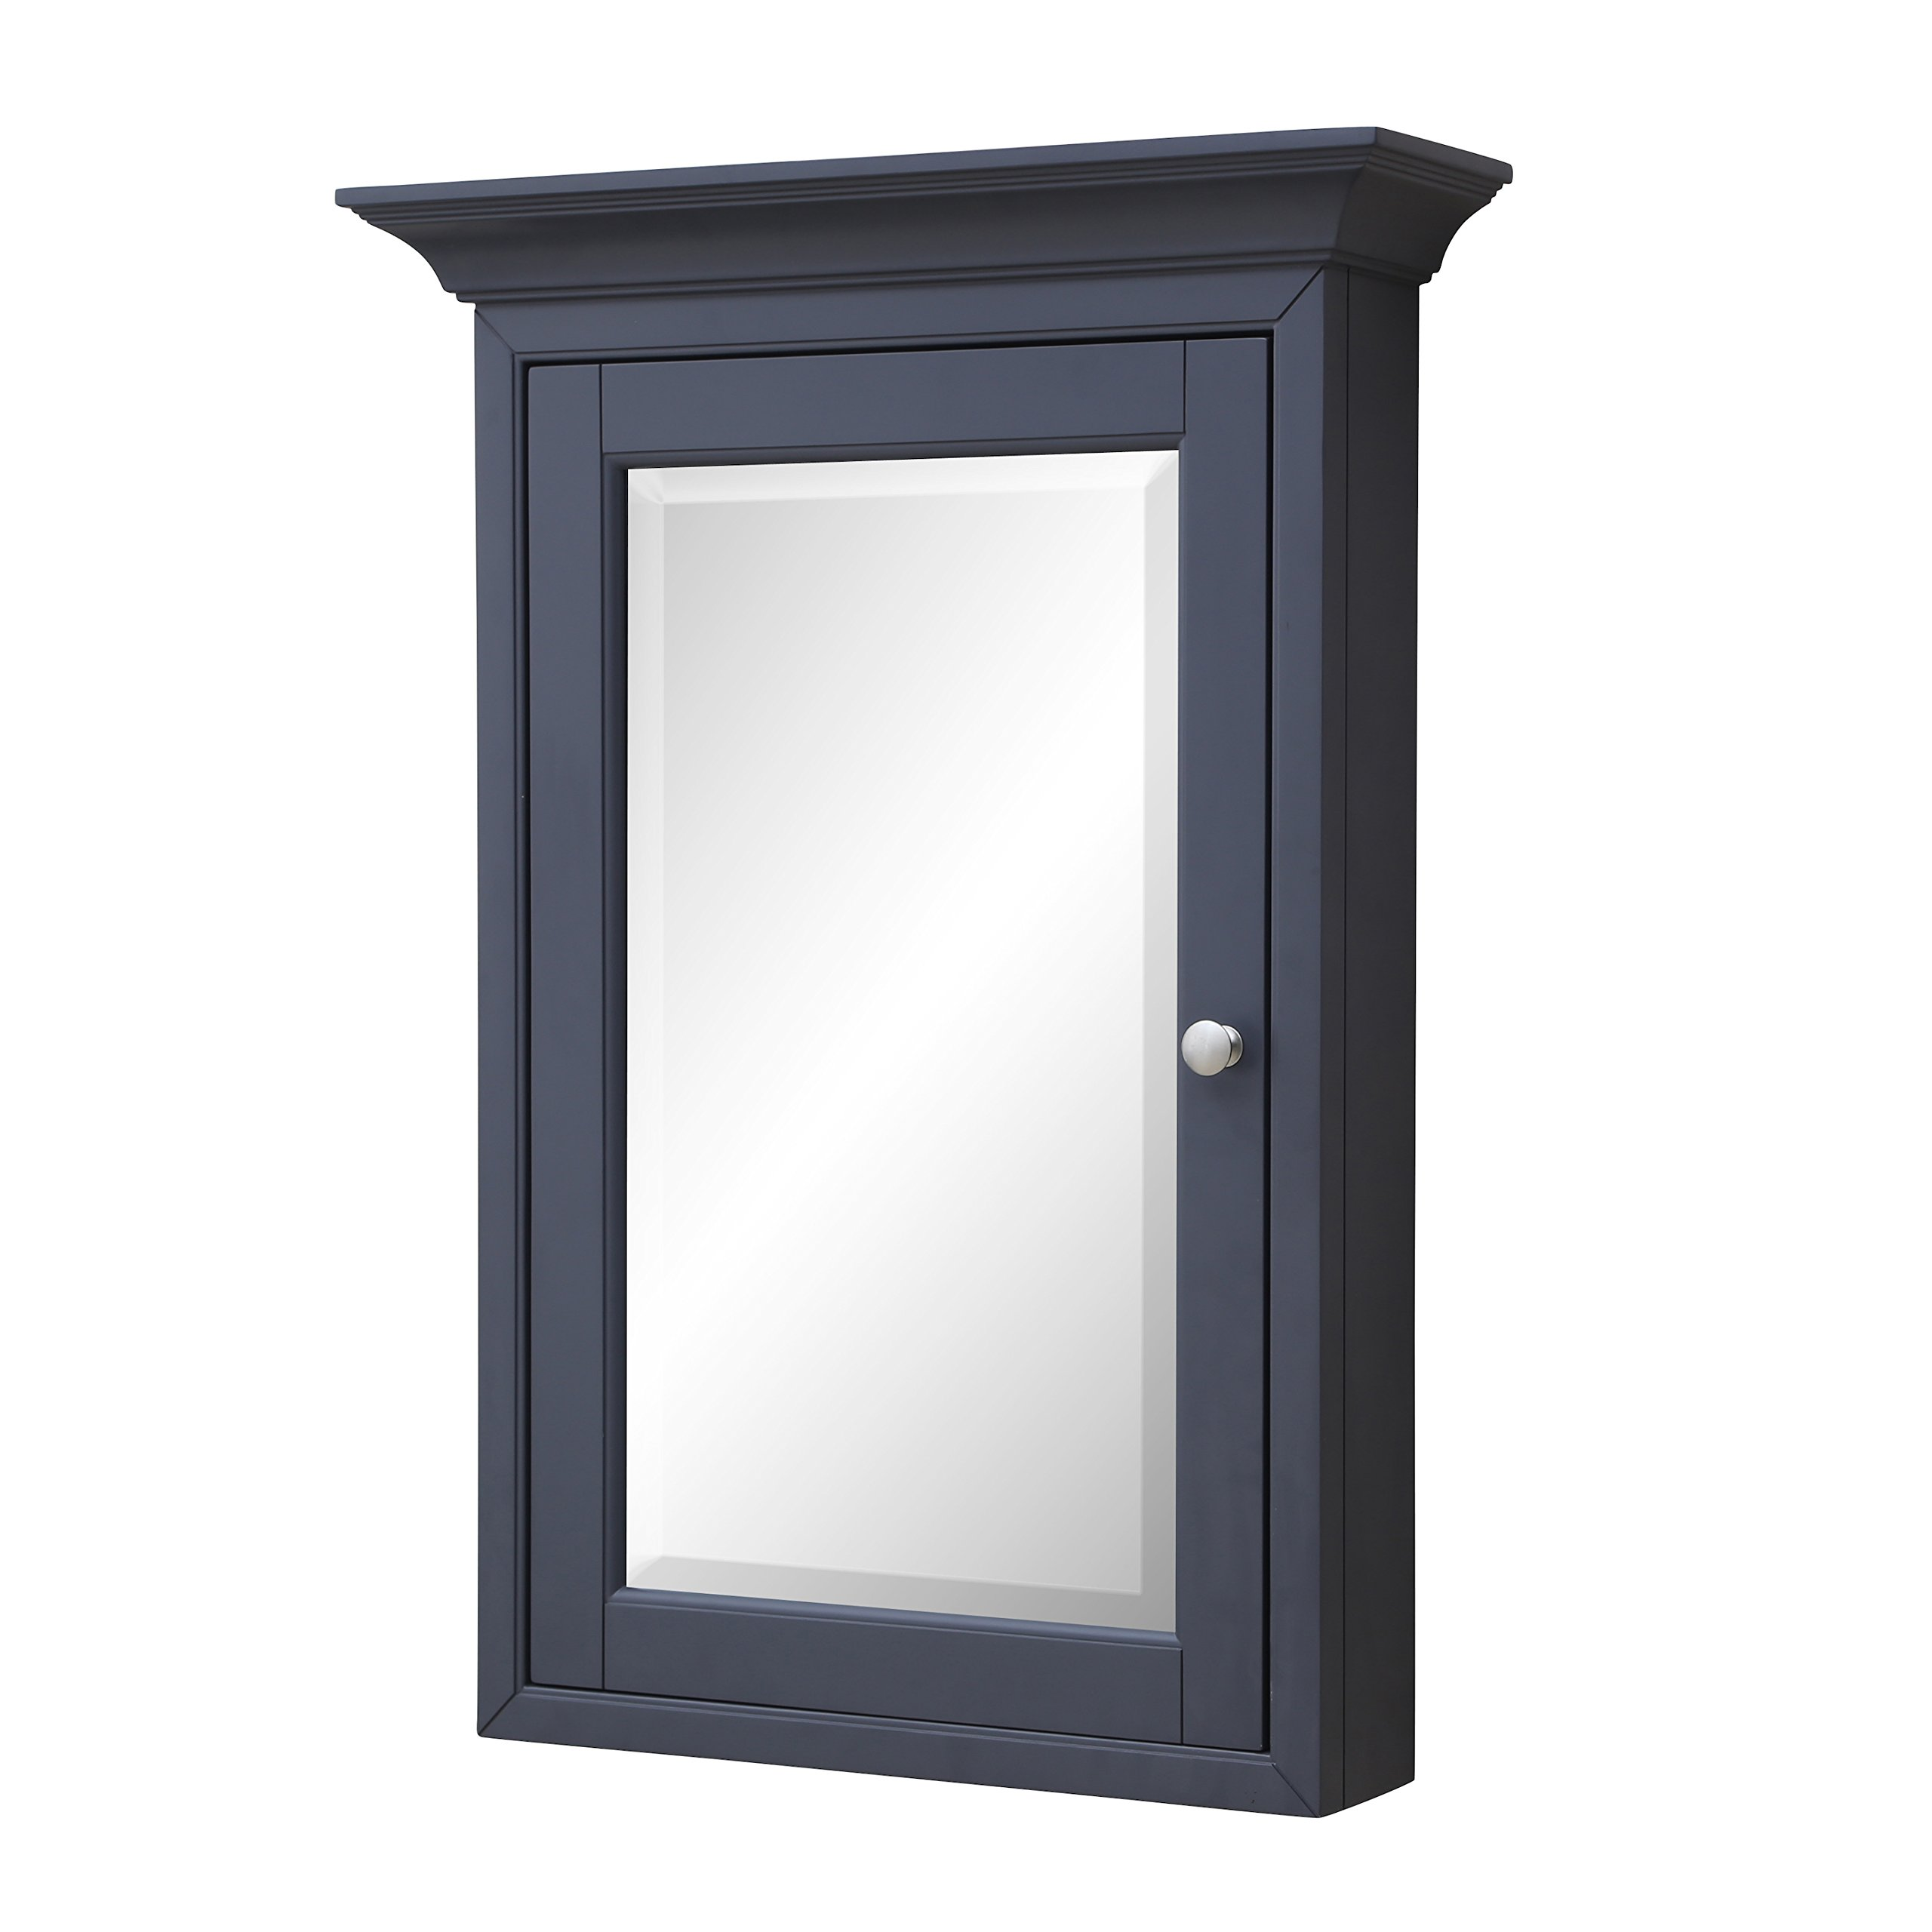 Newport Wall-Mounted Medicine Cabinet (Charcoal Gray) by Kitchen Bath Collection